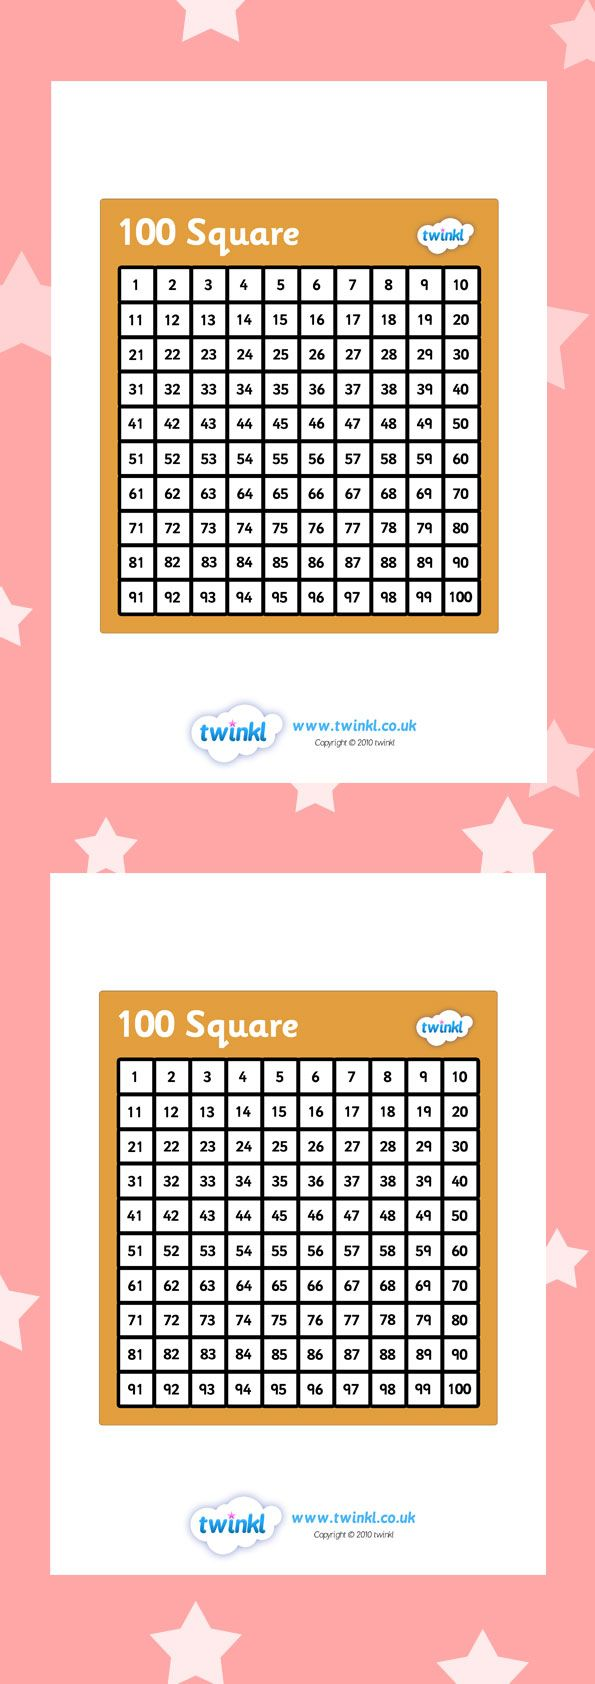 Twinkl Resources 100 Square Printable Resources For Primary